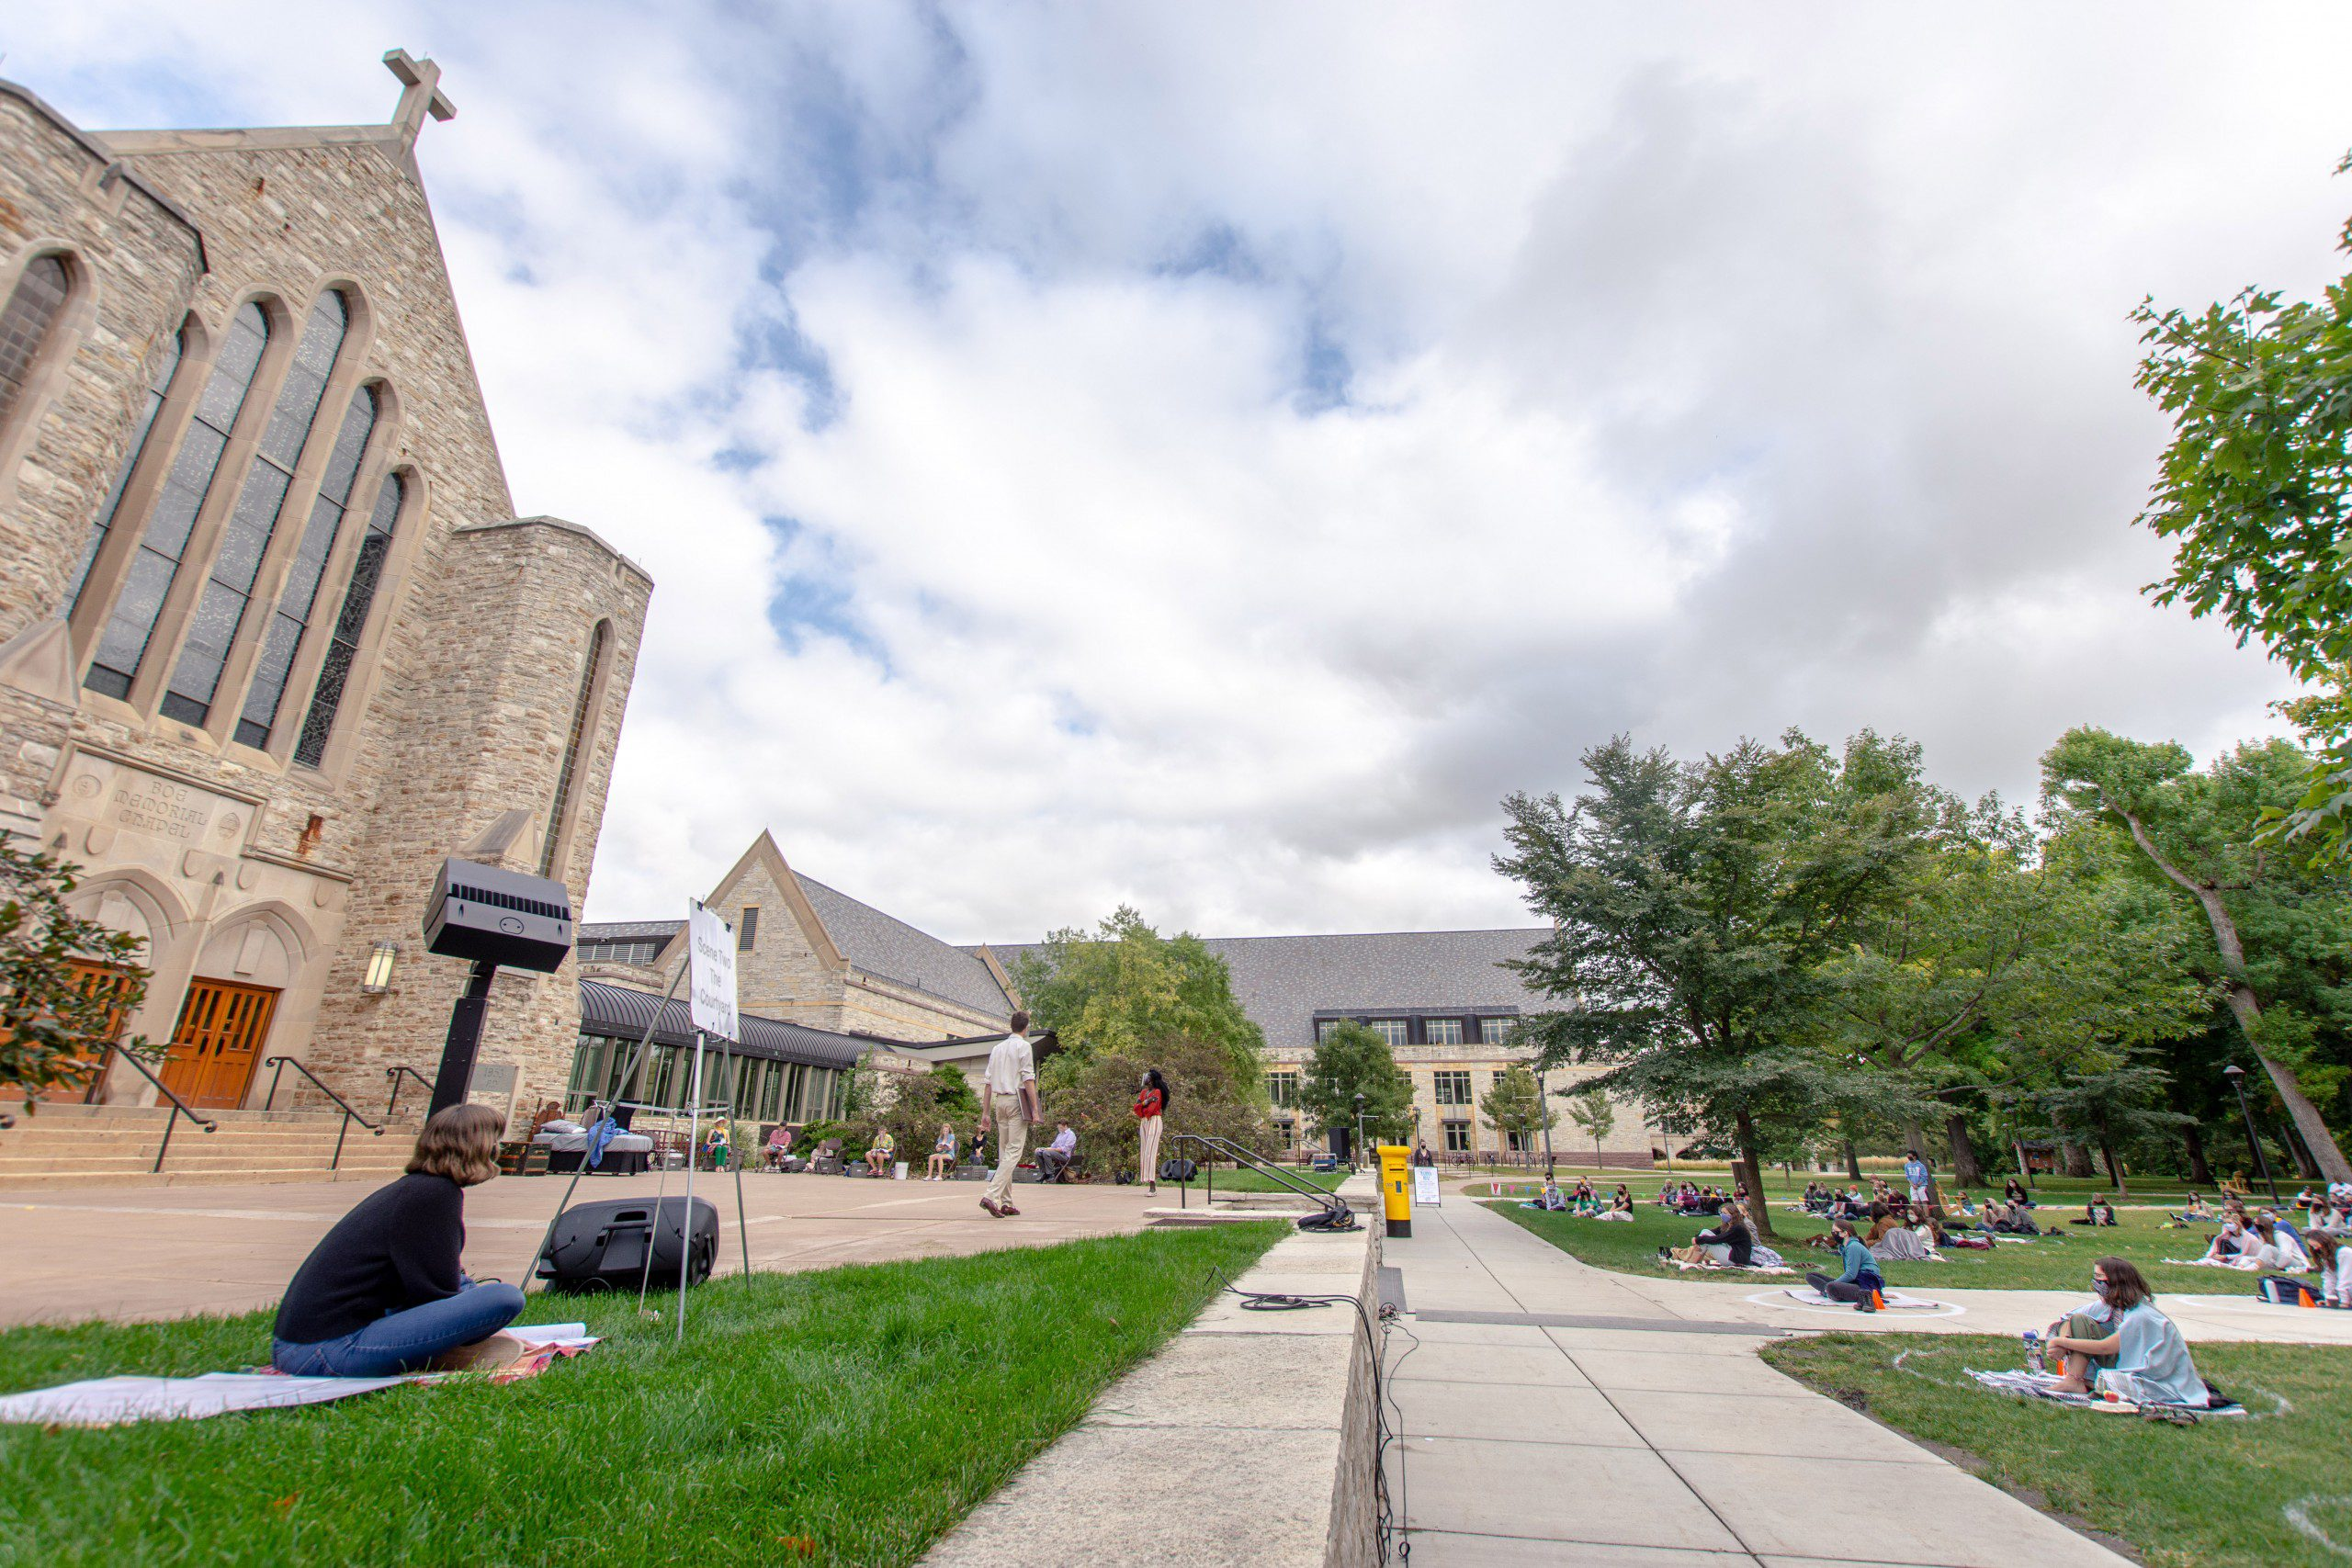 Photo of St. Olaf campus with performers on Boe Chapel plaza.